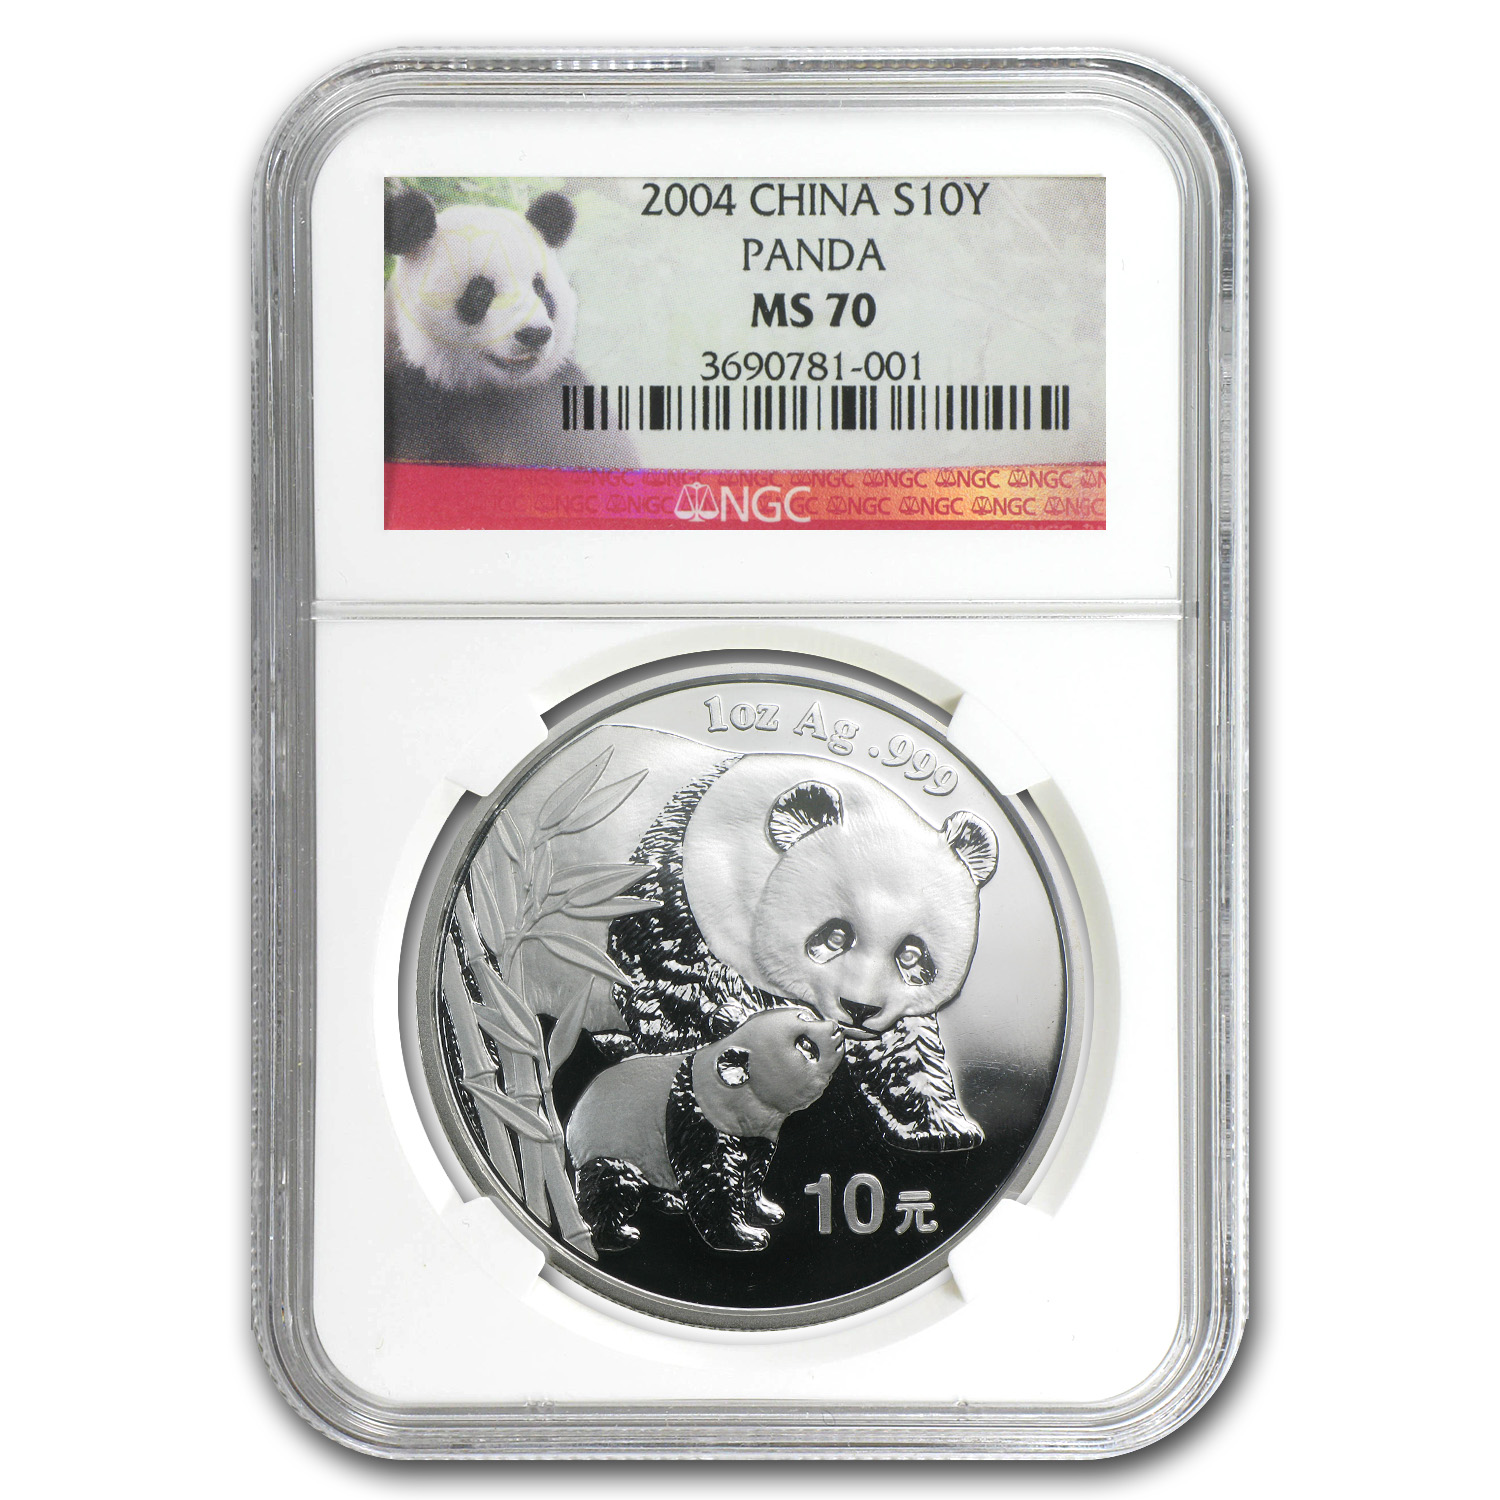 2004 China 1 oz Silver Panda MS-70 NGC